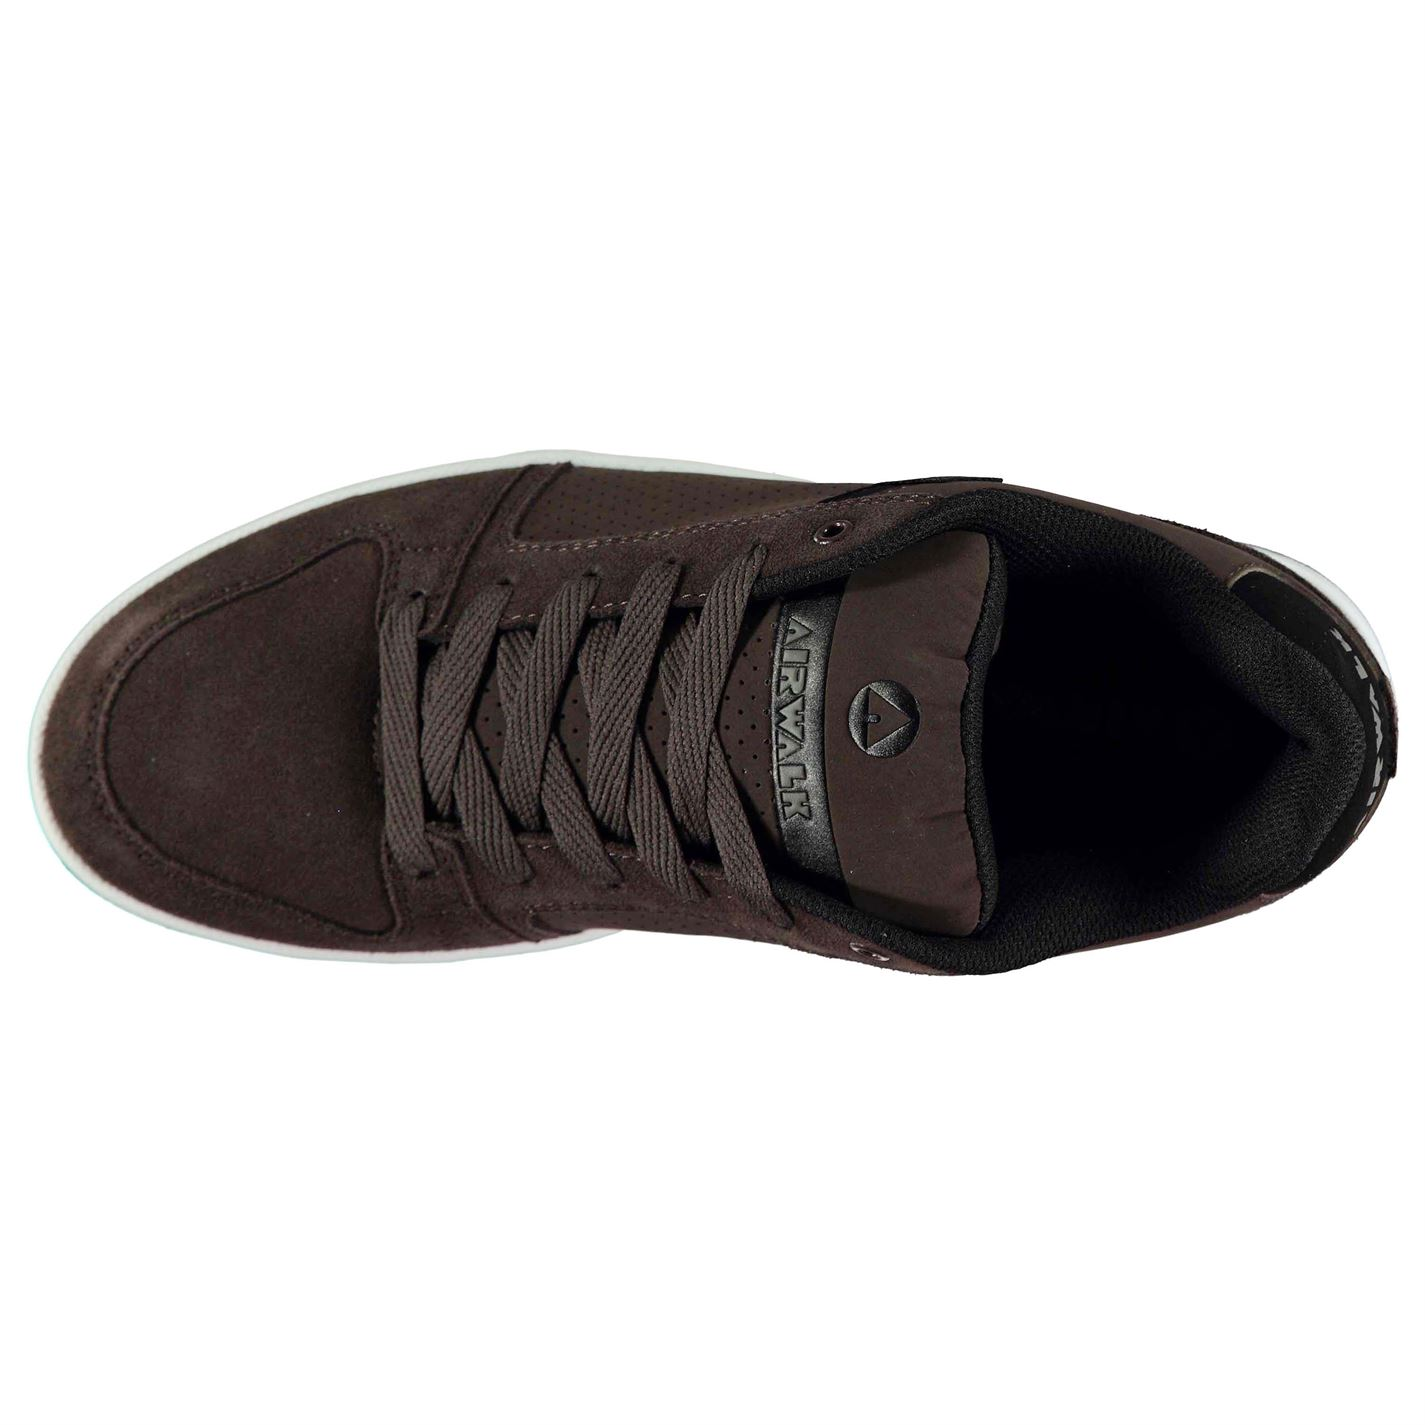 Airwalk-Mens-Brock-Skate-Shoes-Lace-Up-Suede-Accents-Sport-Casual-Trainers thumbnail 17